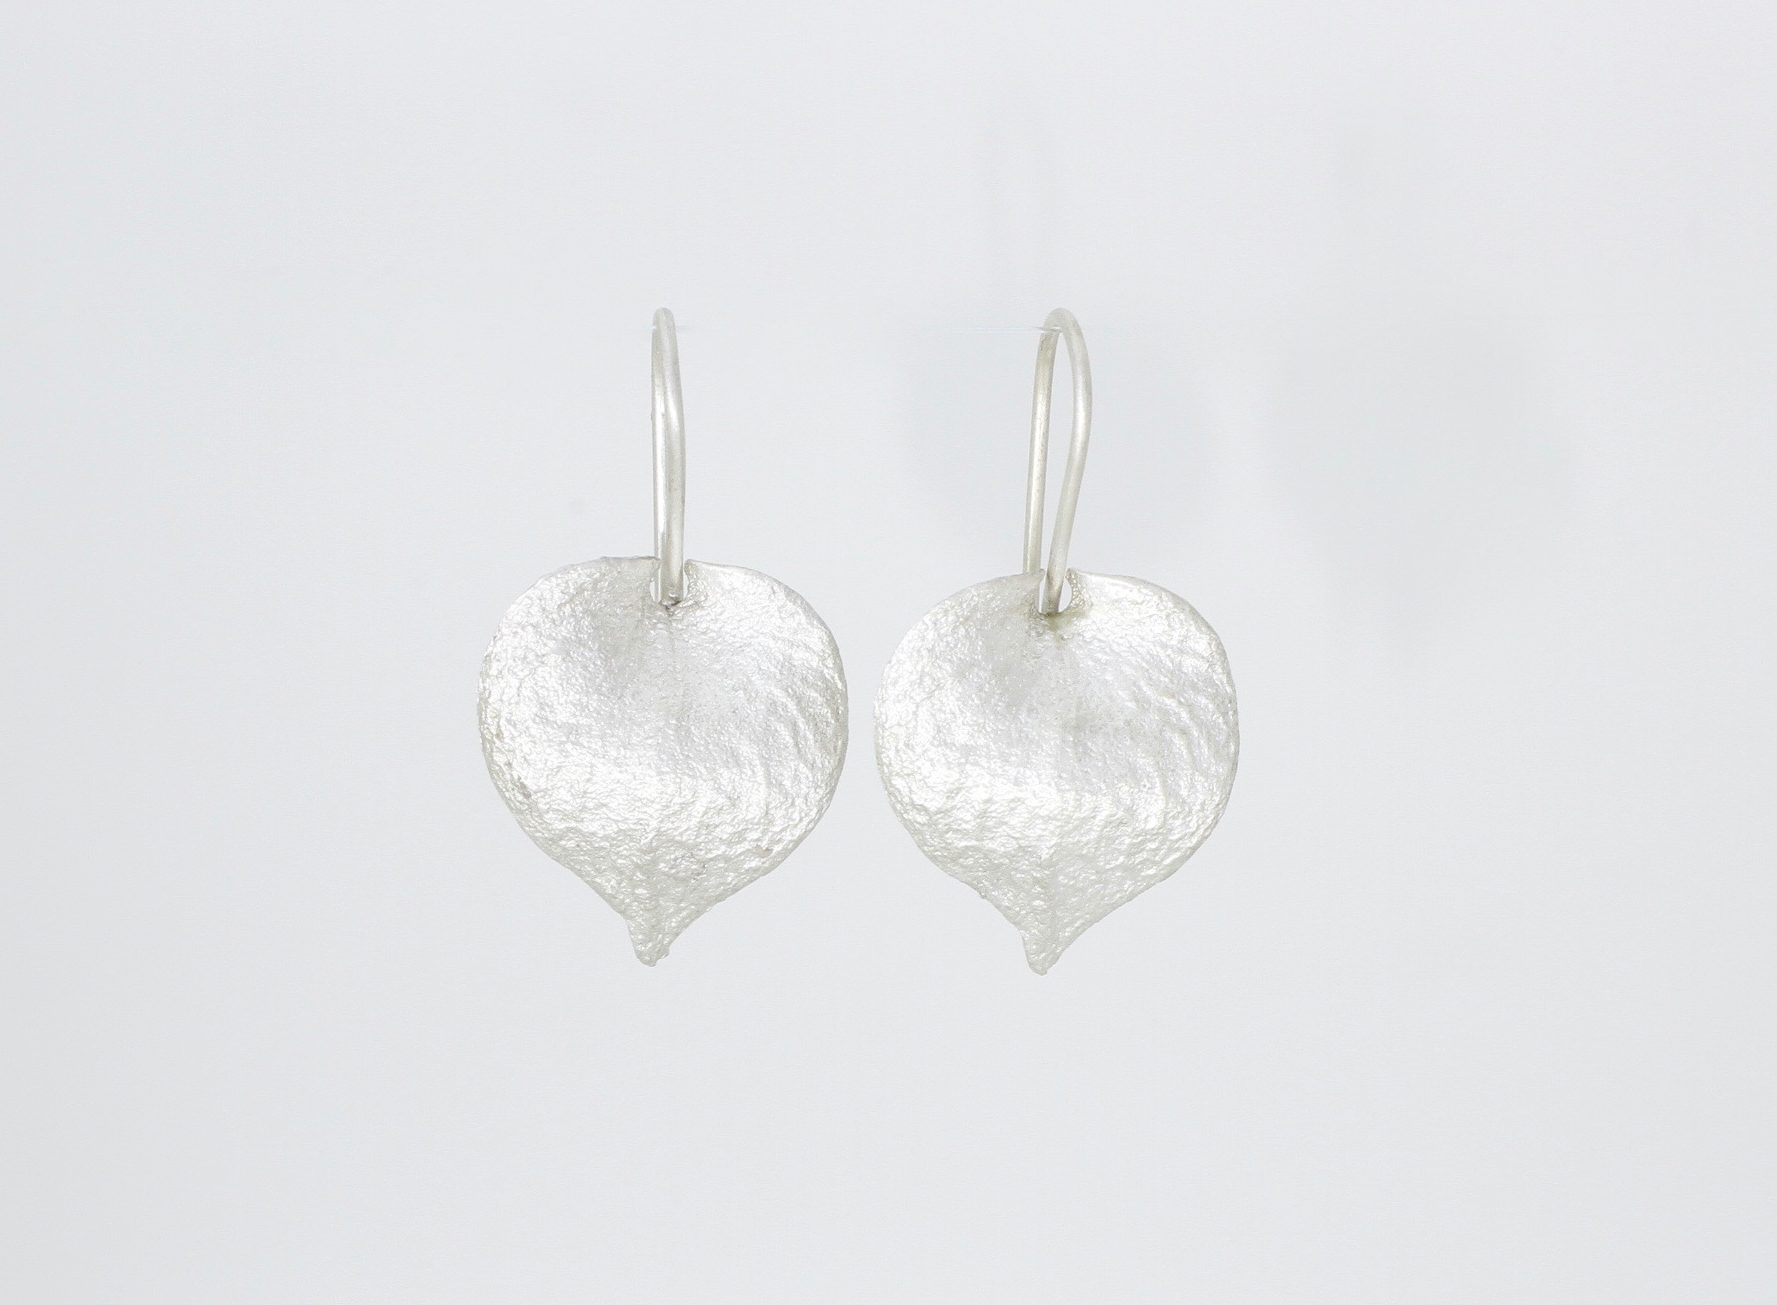 Payet sterling silver earrings